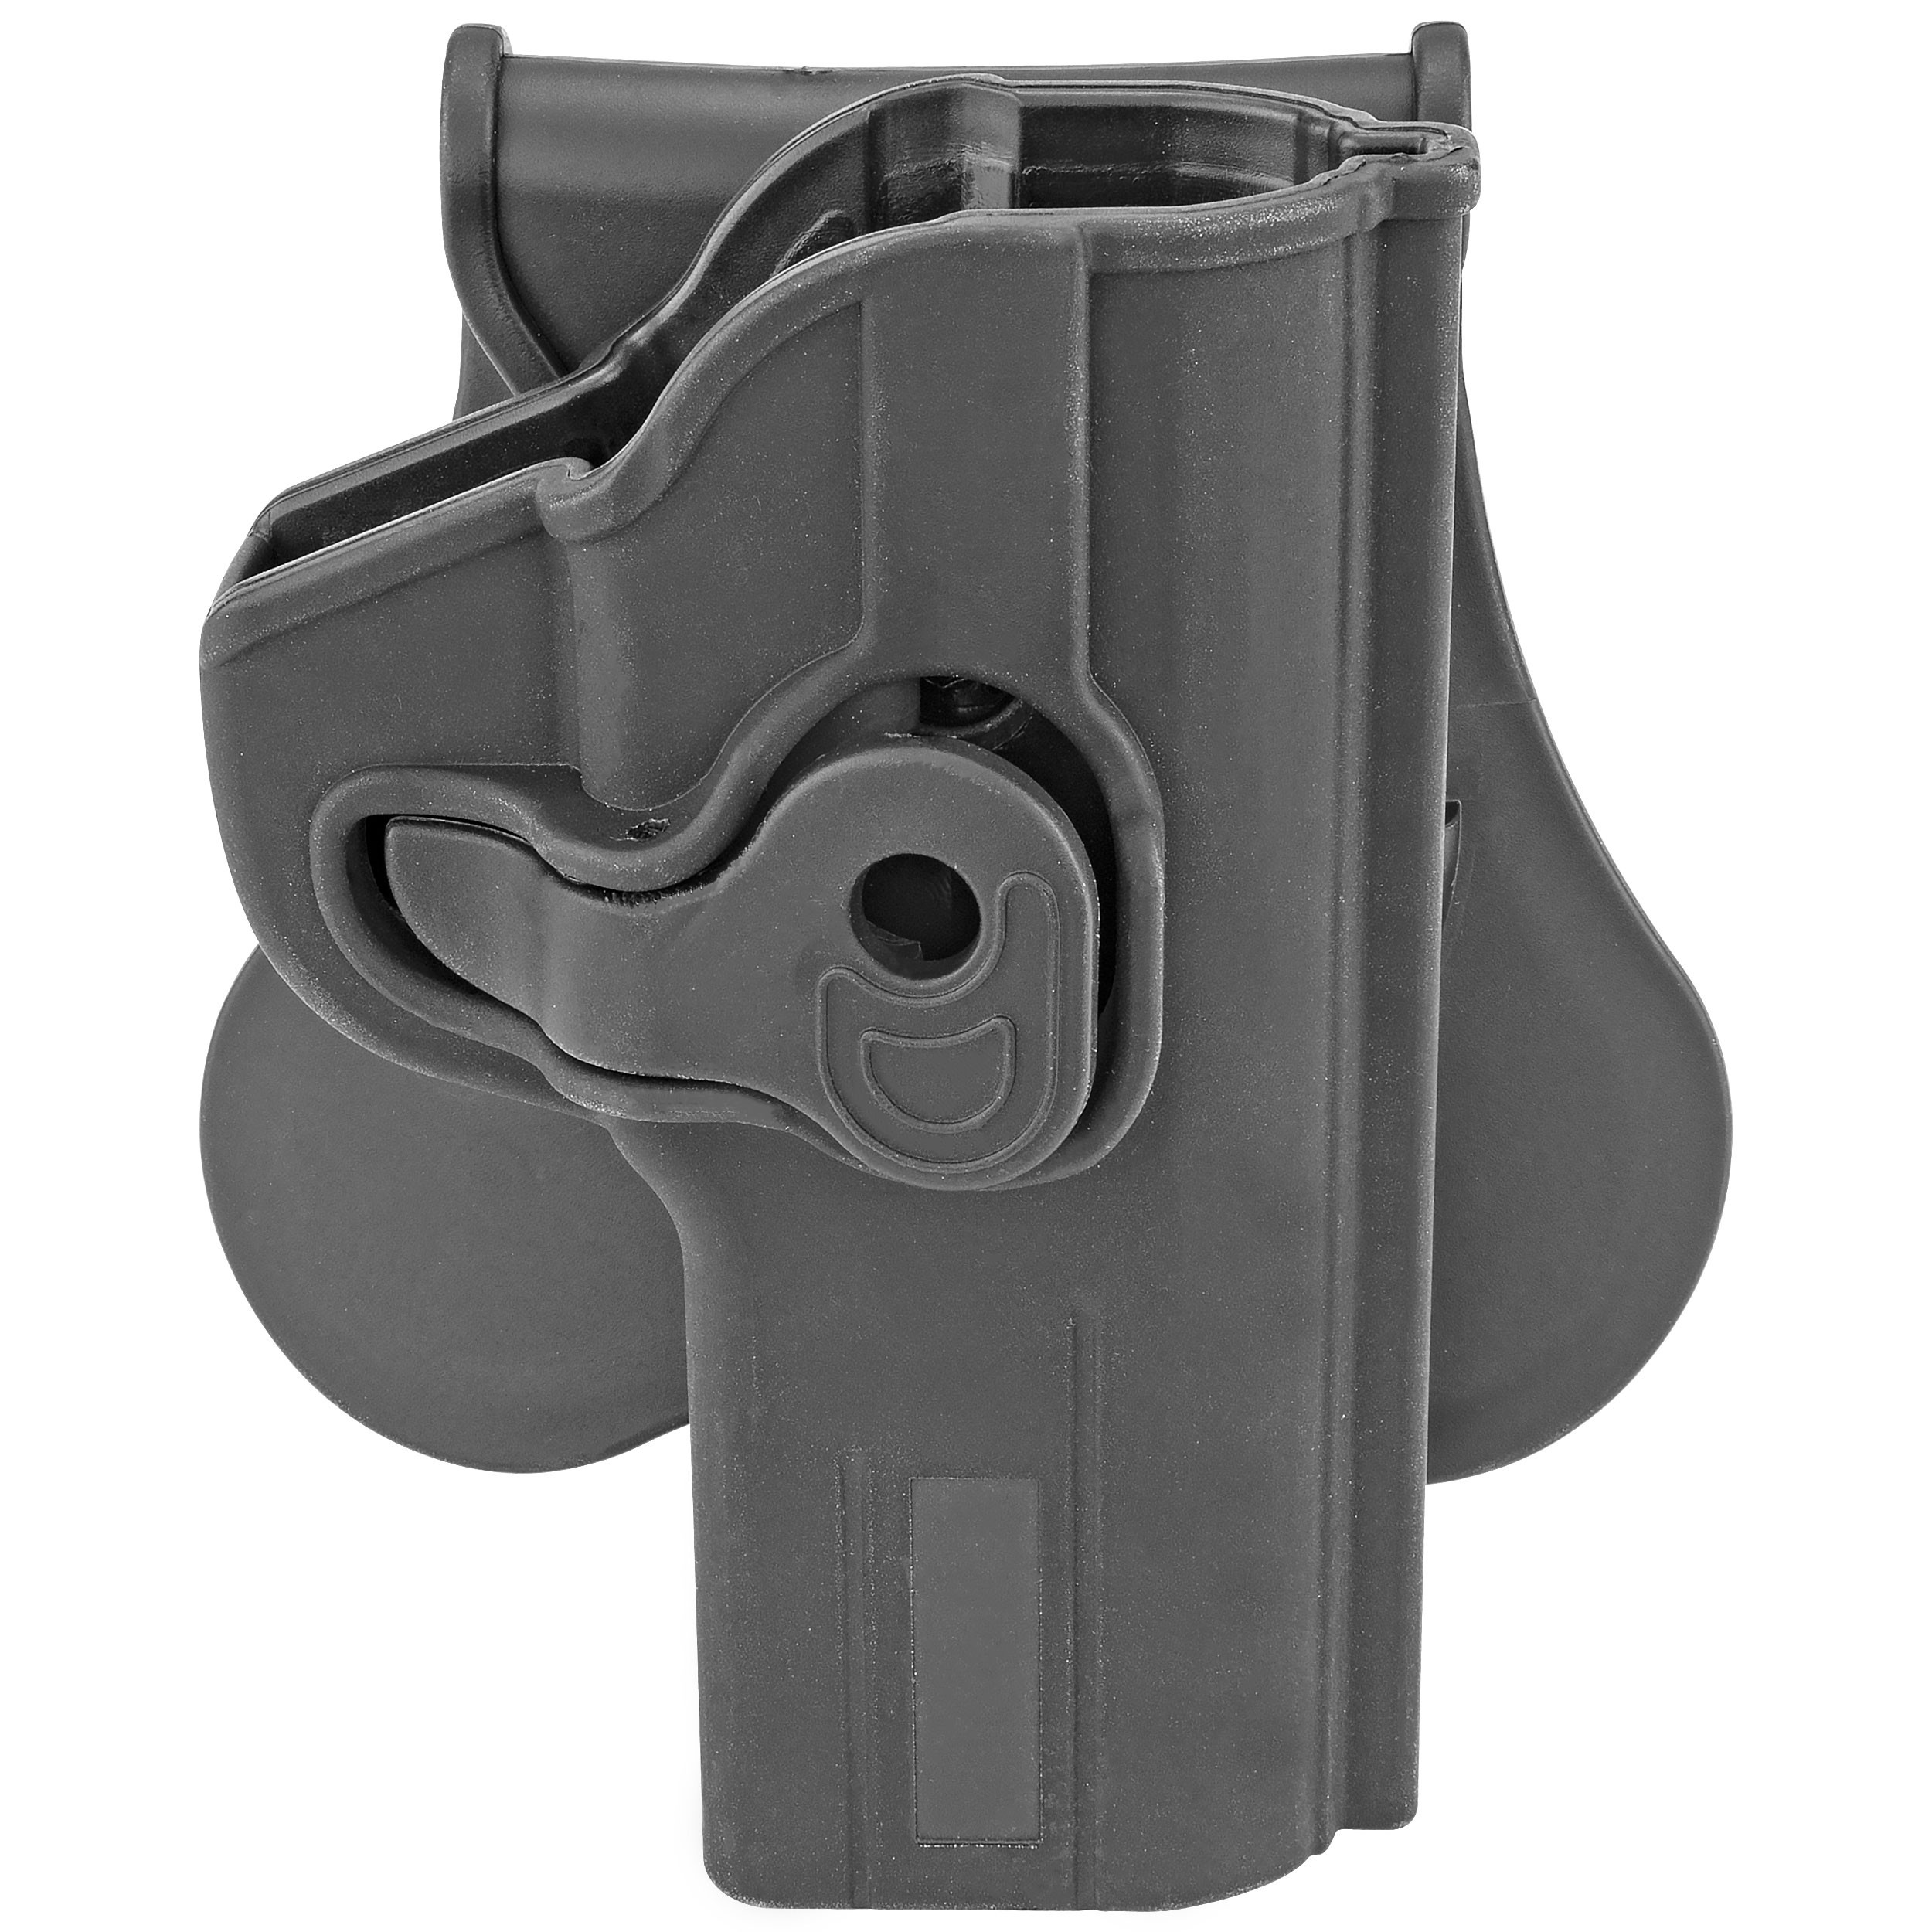 Fits Ruger SR9 Full Size, SR9 Regular    Holster